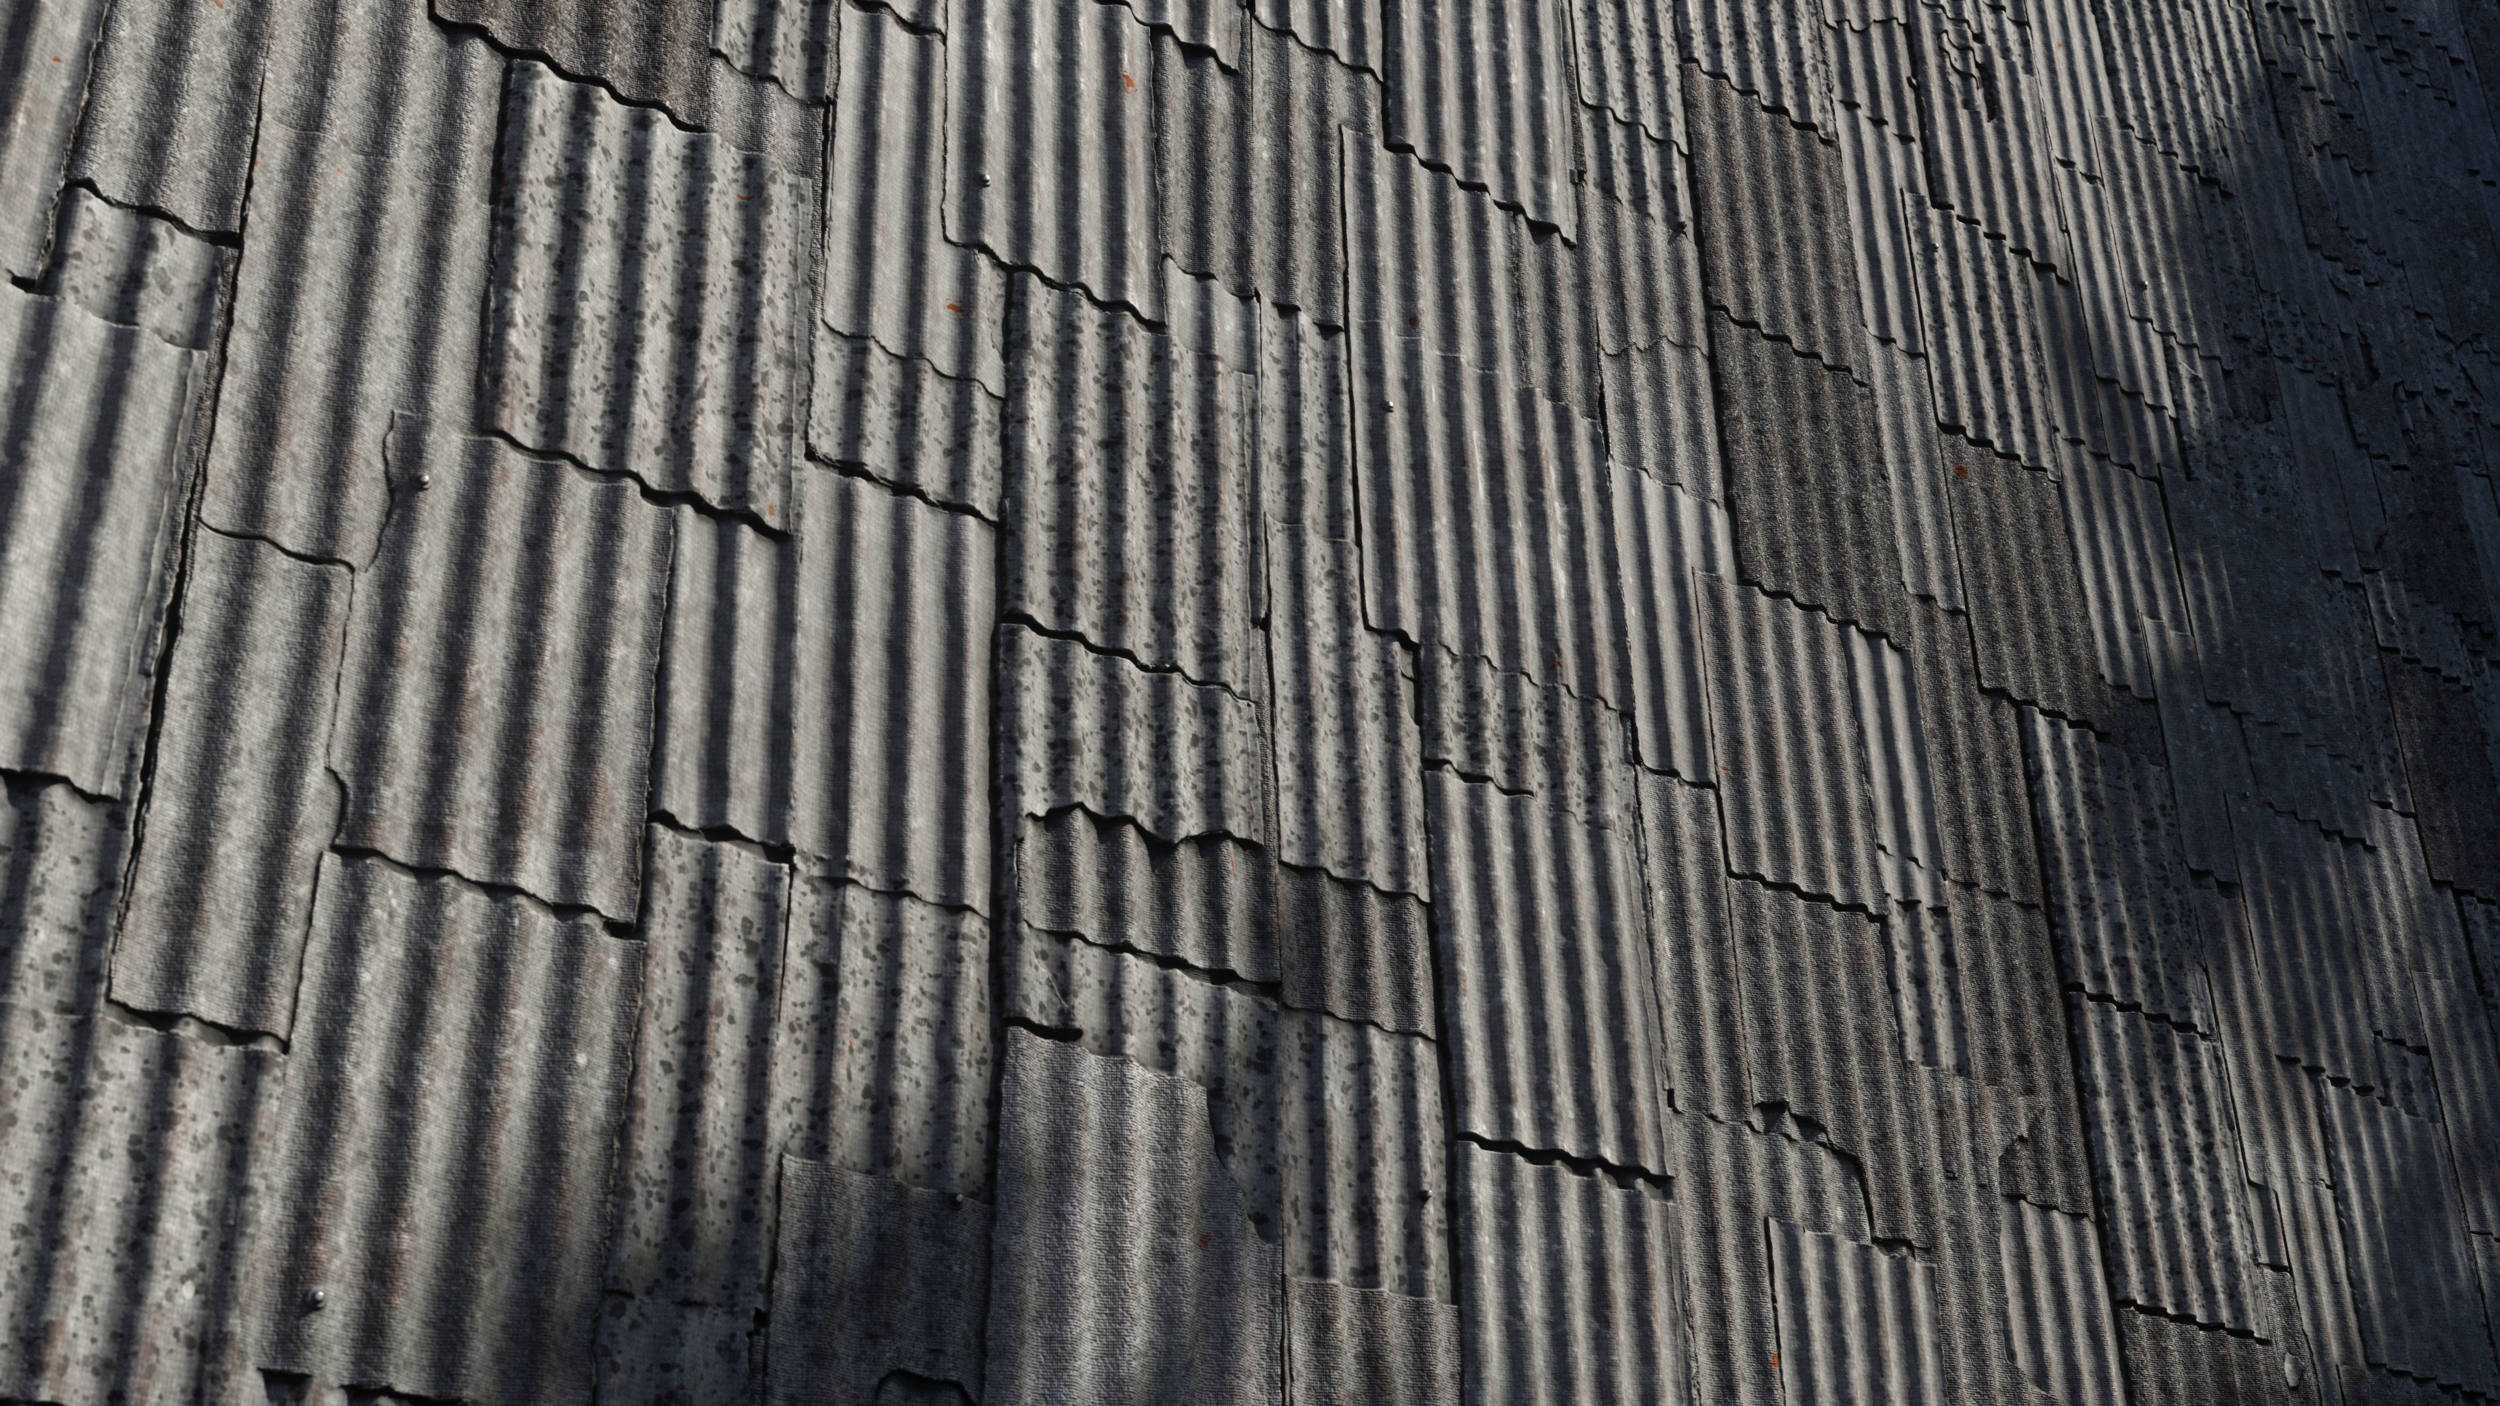 Tcom_Roofing_AsbestosMessy_header3.png